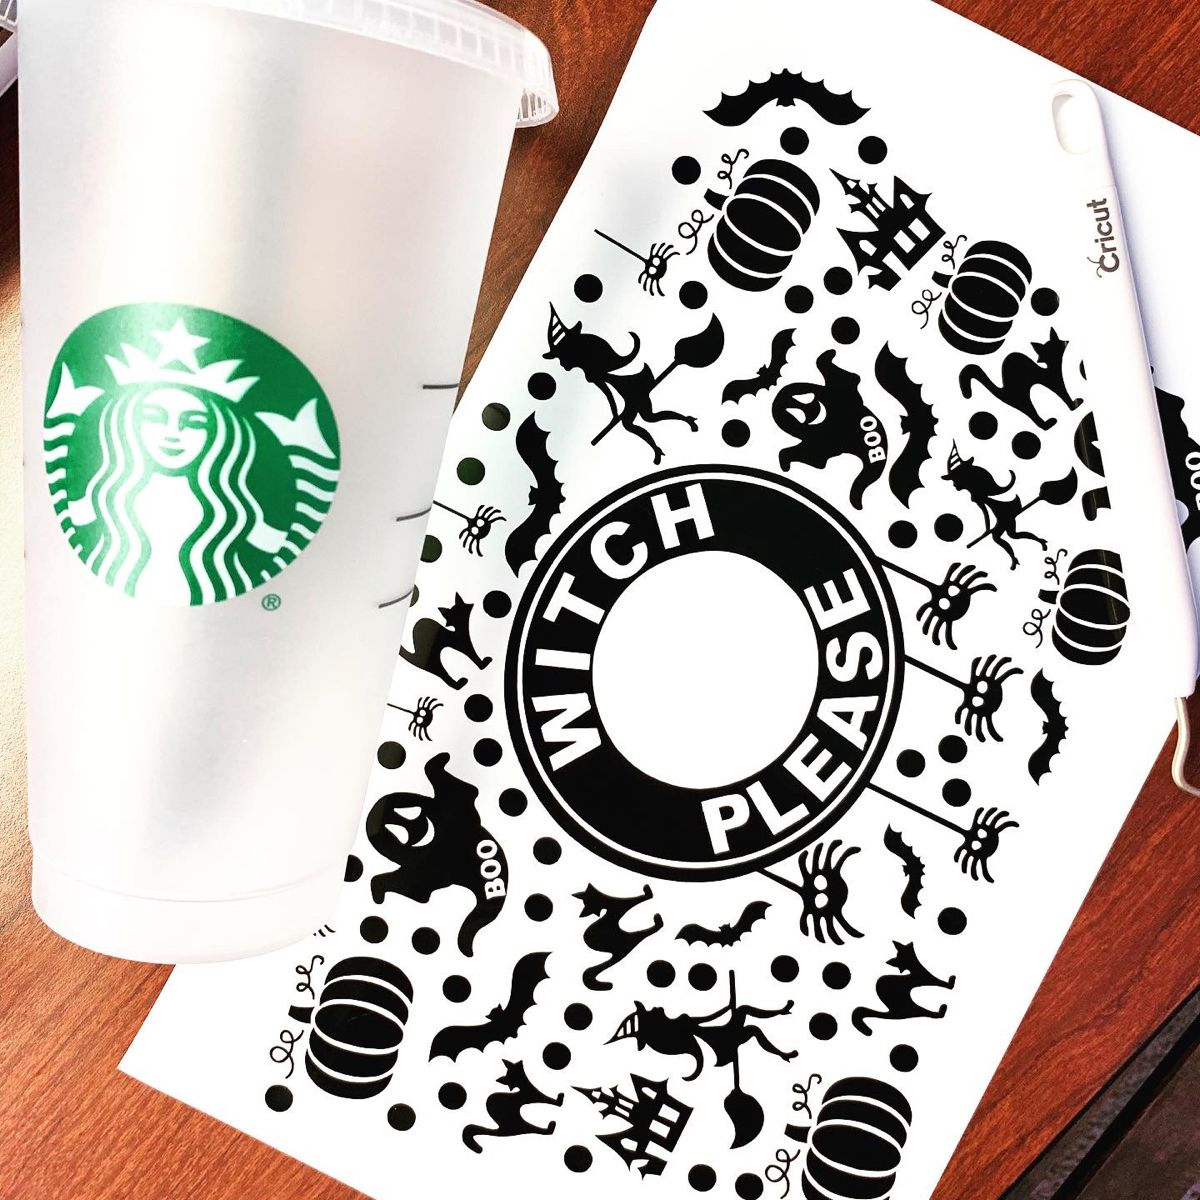 Halloween Design Full Wrap Starbucks Venti Coffee Svg File Etsy In 2020 Starbucks Diy Halloween Cups Starbucks Halloween